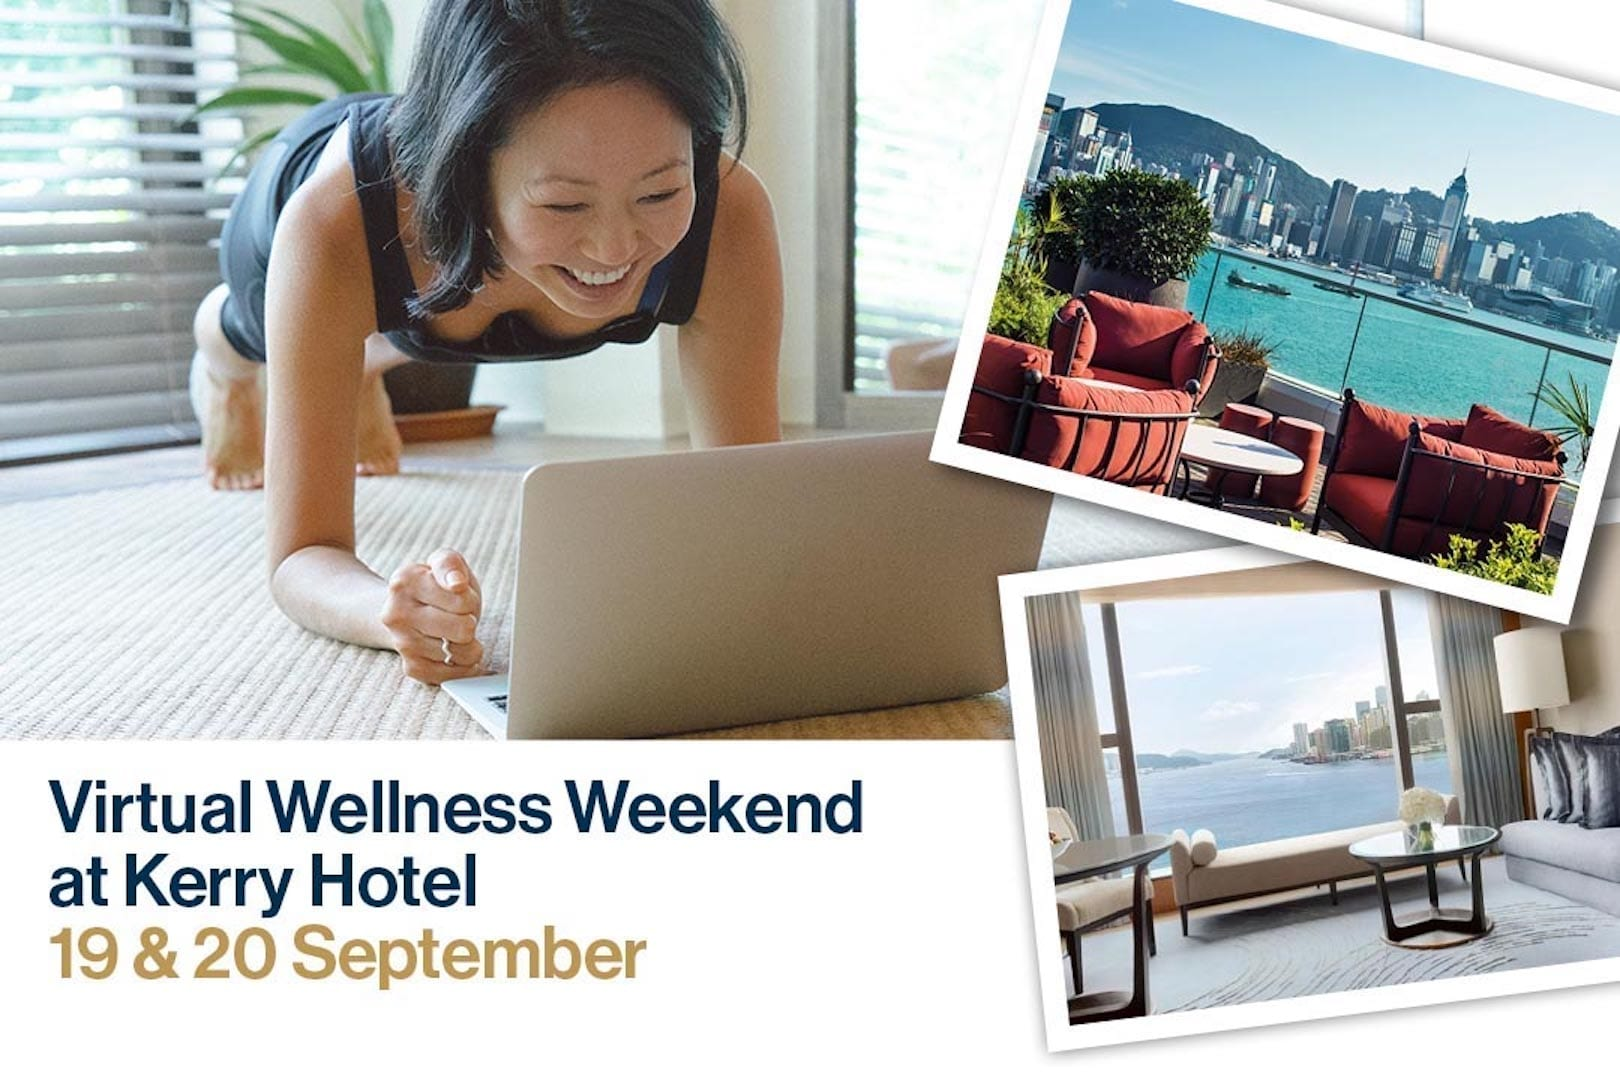 PURE & Kerry Hotel Partner to Launch First-Ever HK Virtual Wellness Weekend